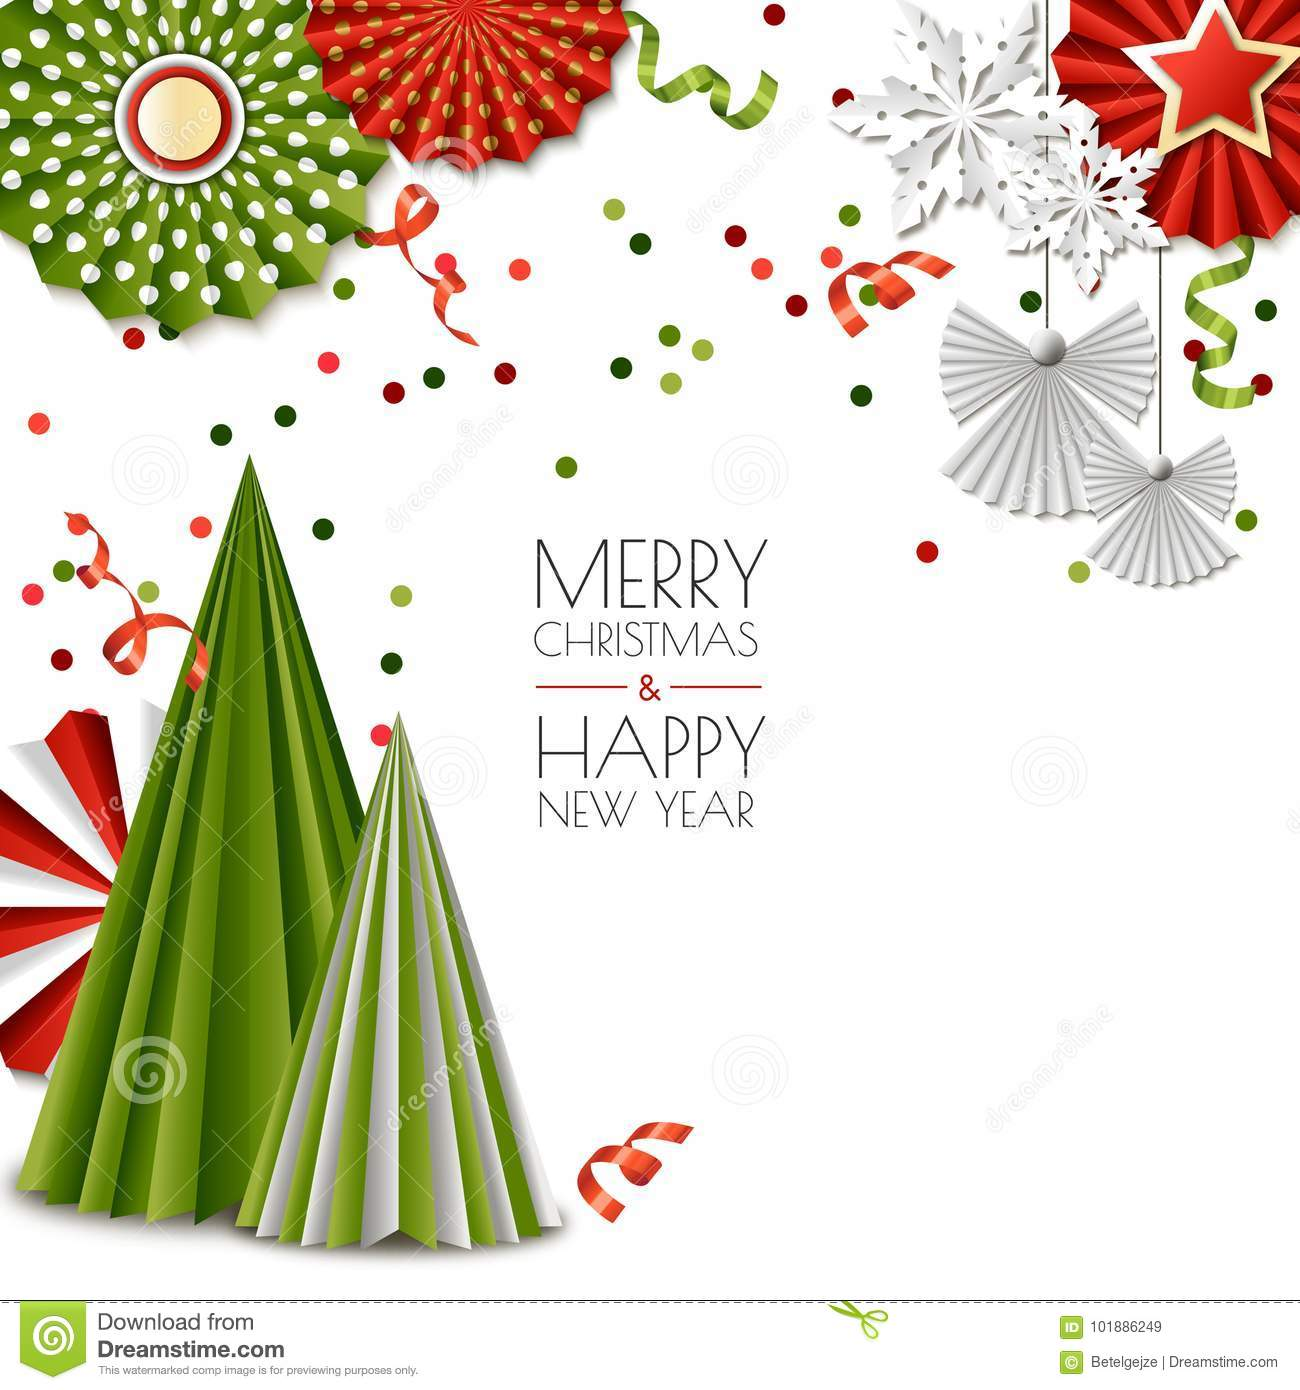 Merry Christmas, Happy New Year Greeting Card. Vector Green And Red ...